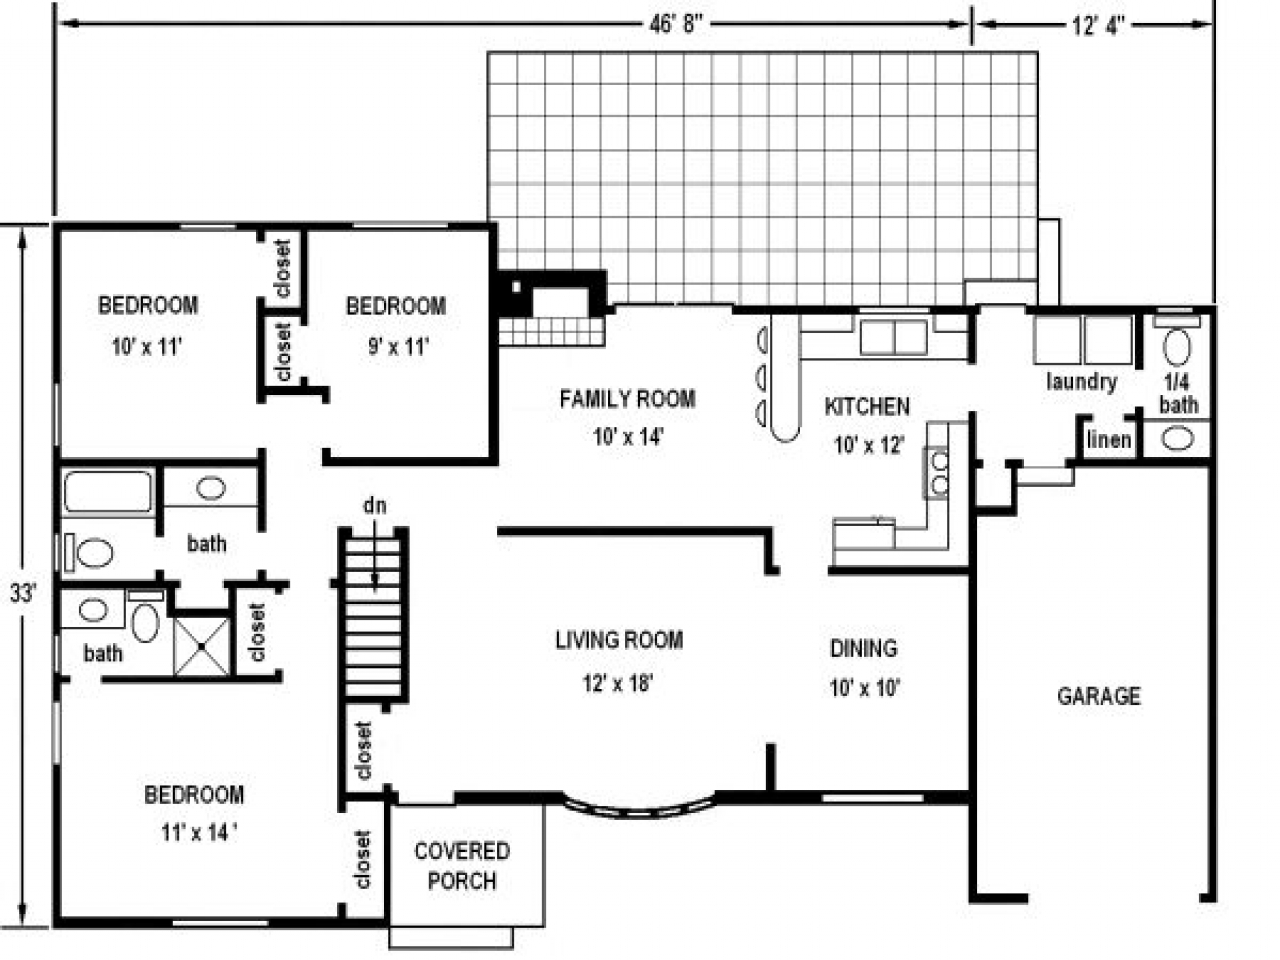 Design own house free plans free printable house for Design your own blueprints free